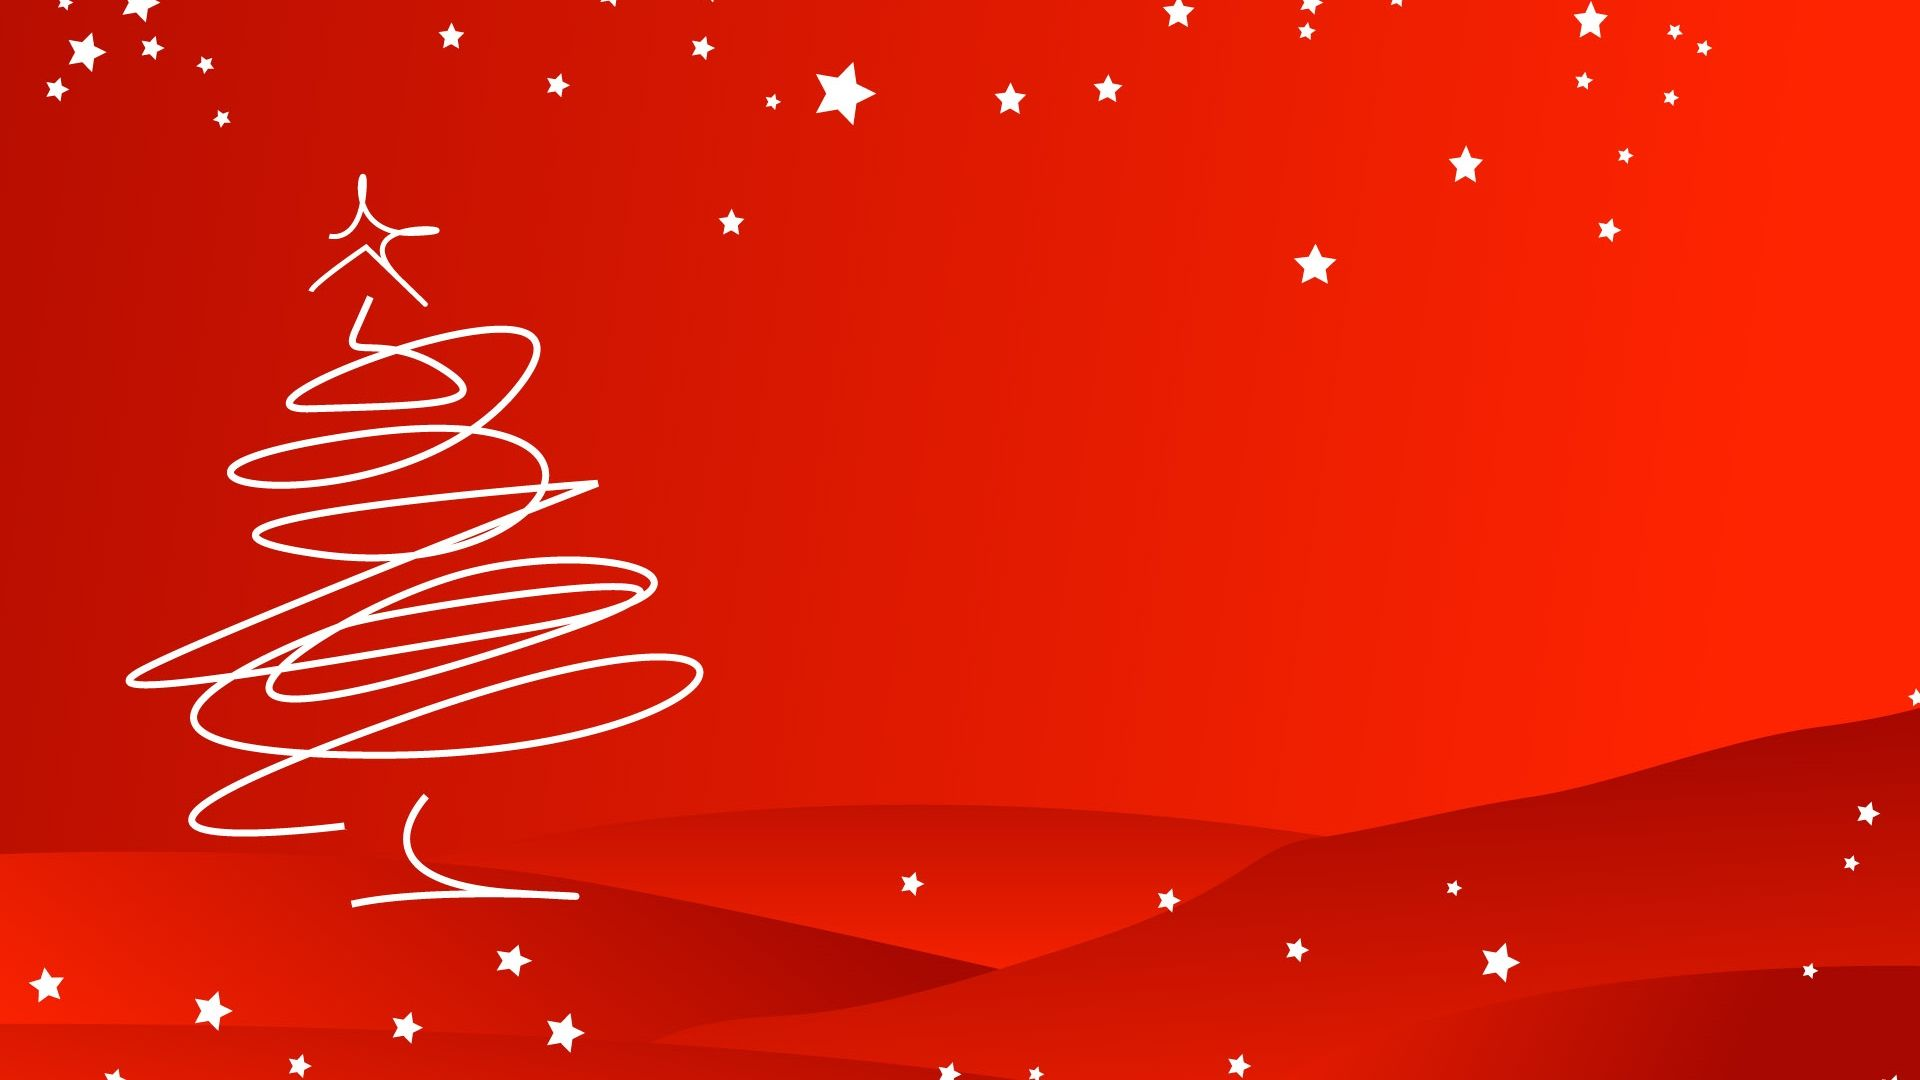 High res christmas backgrounds